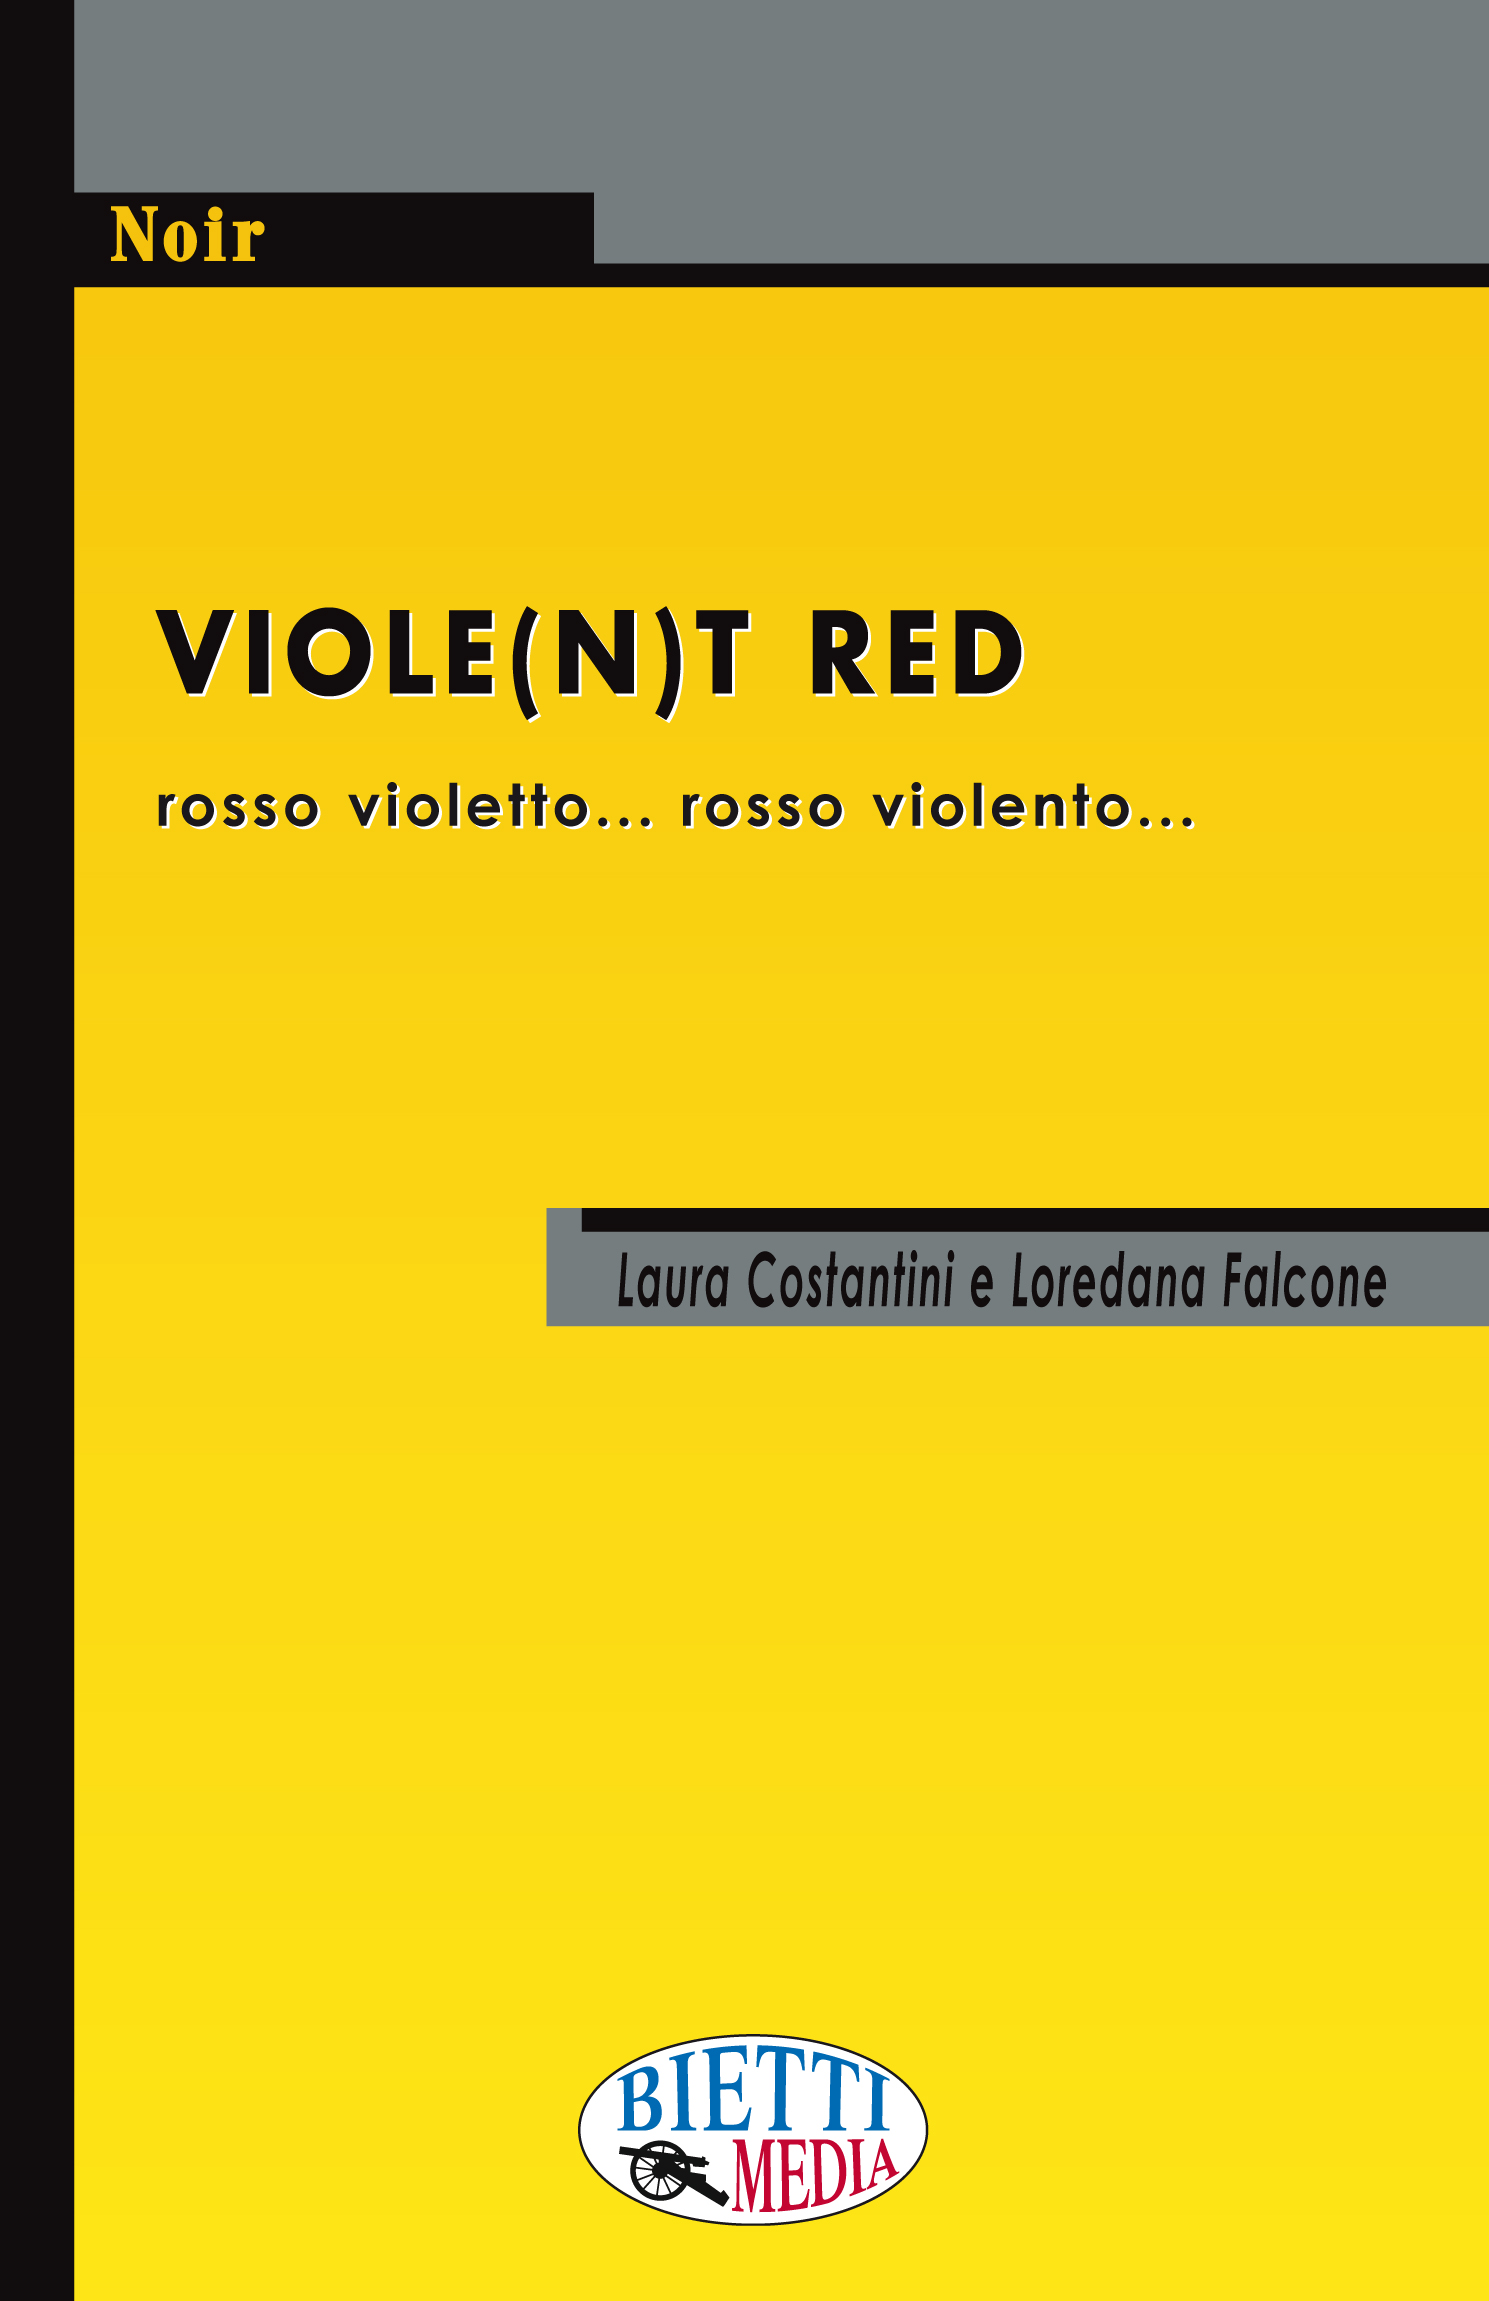 Viole(n)t Red